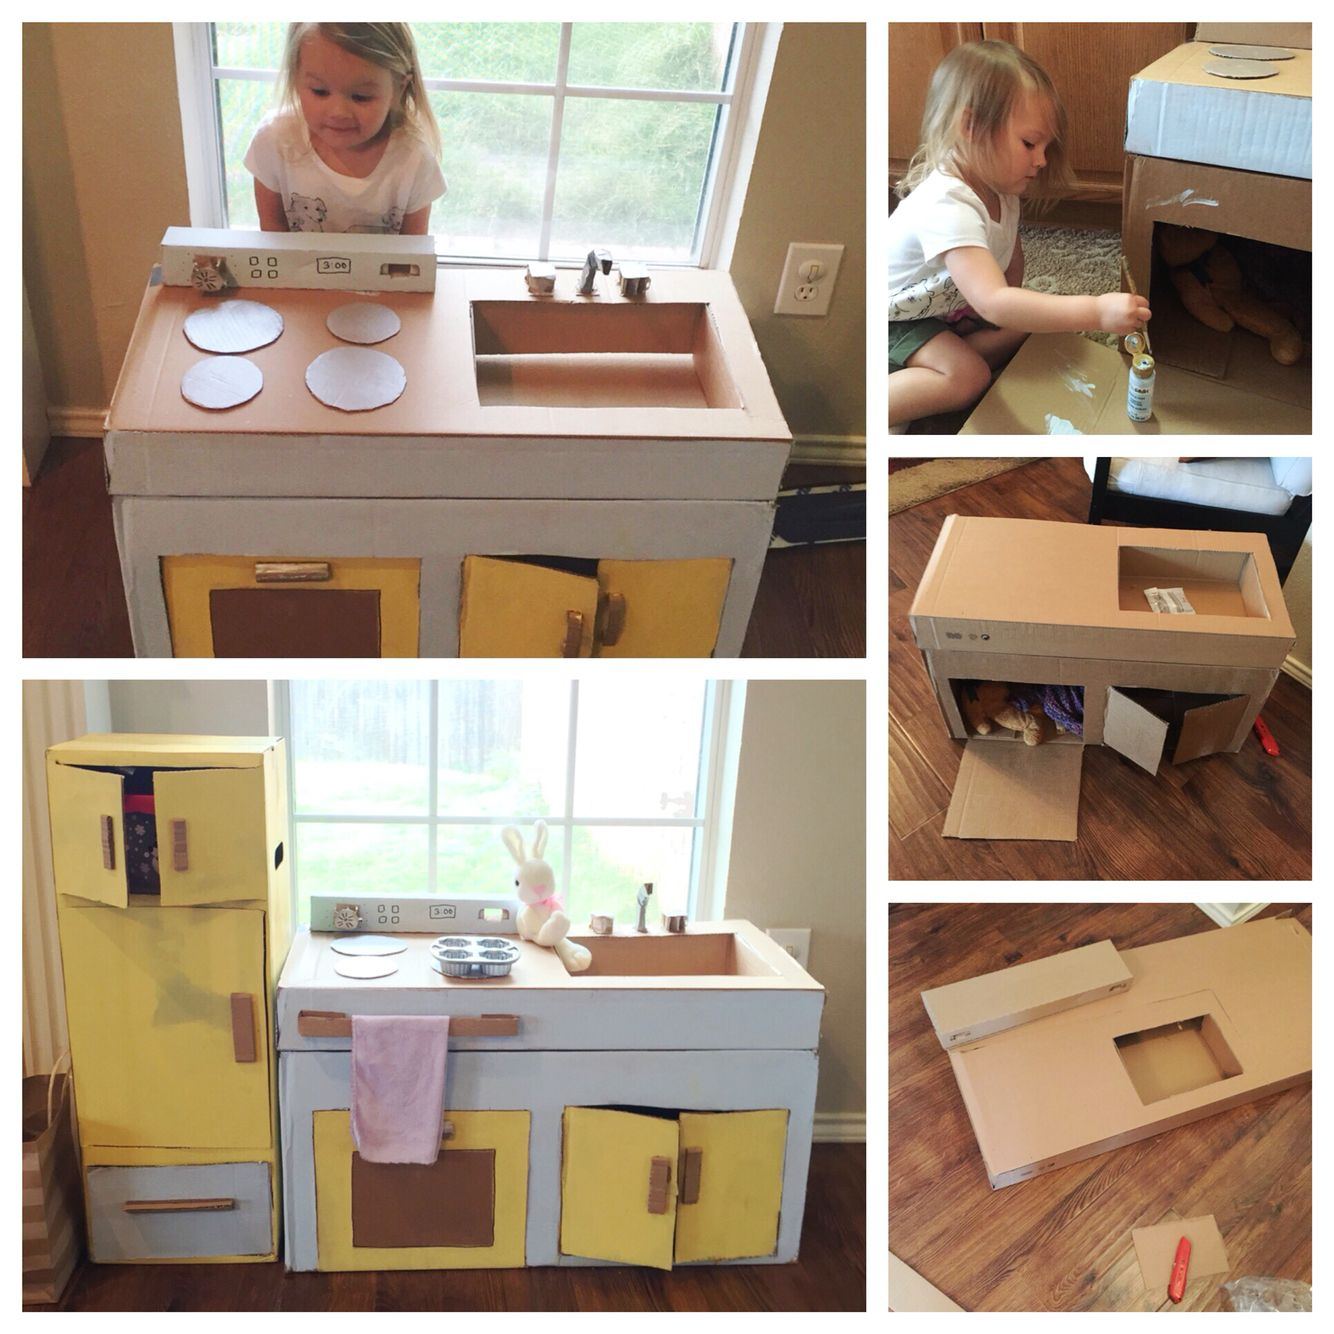 Cardboard play kitchen diy kids kitchen cardboard create for Kitchen crafts to make